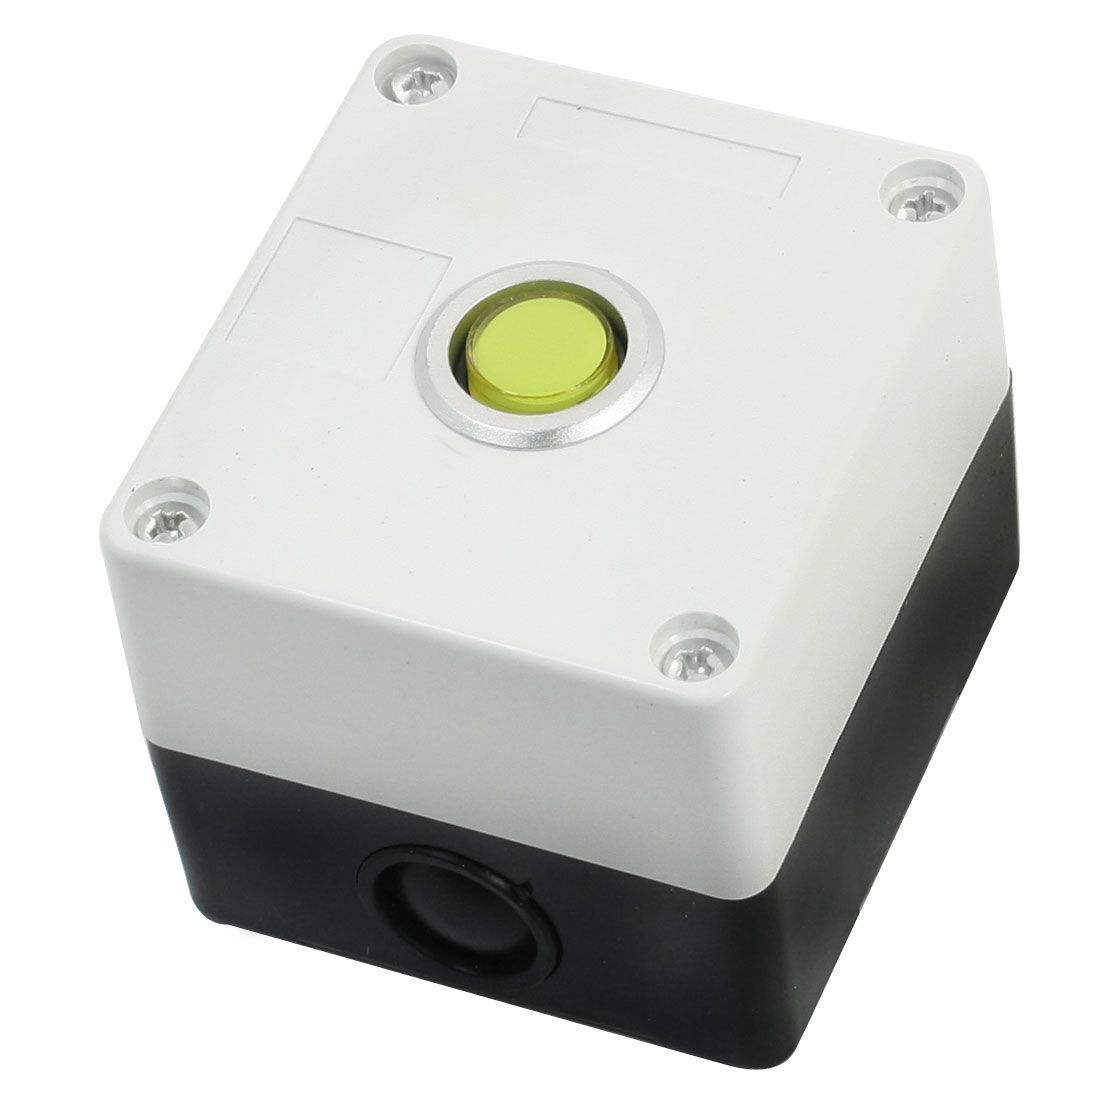 AC 220V 5A SPDT 1NO 1NC 5-Pin Momentary Action Yellow Pilot Lamp White Plastic Case Push Button Station Switch Control Guard Box